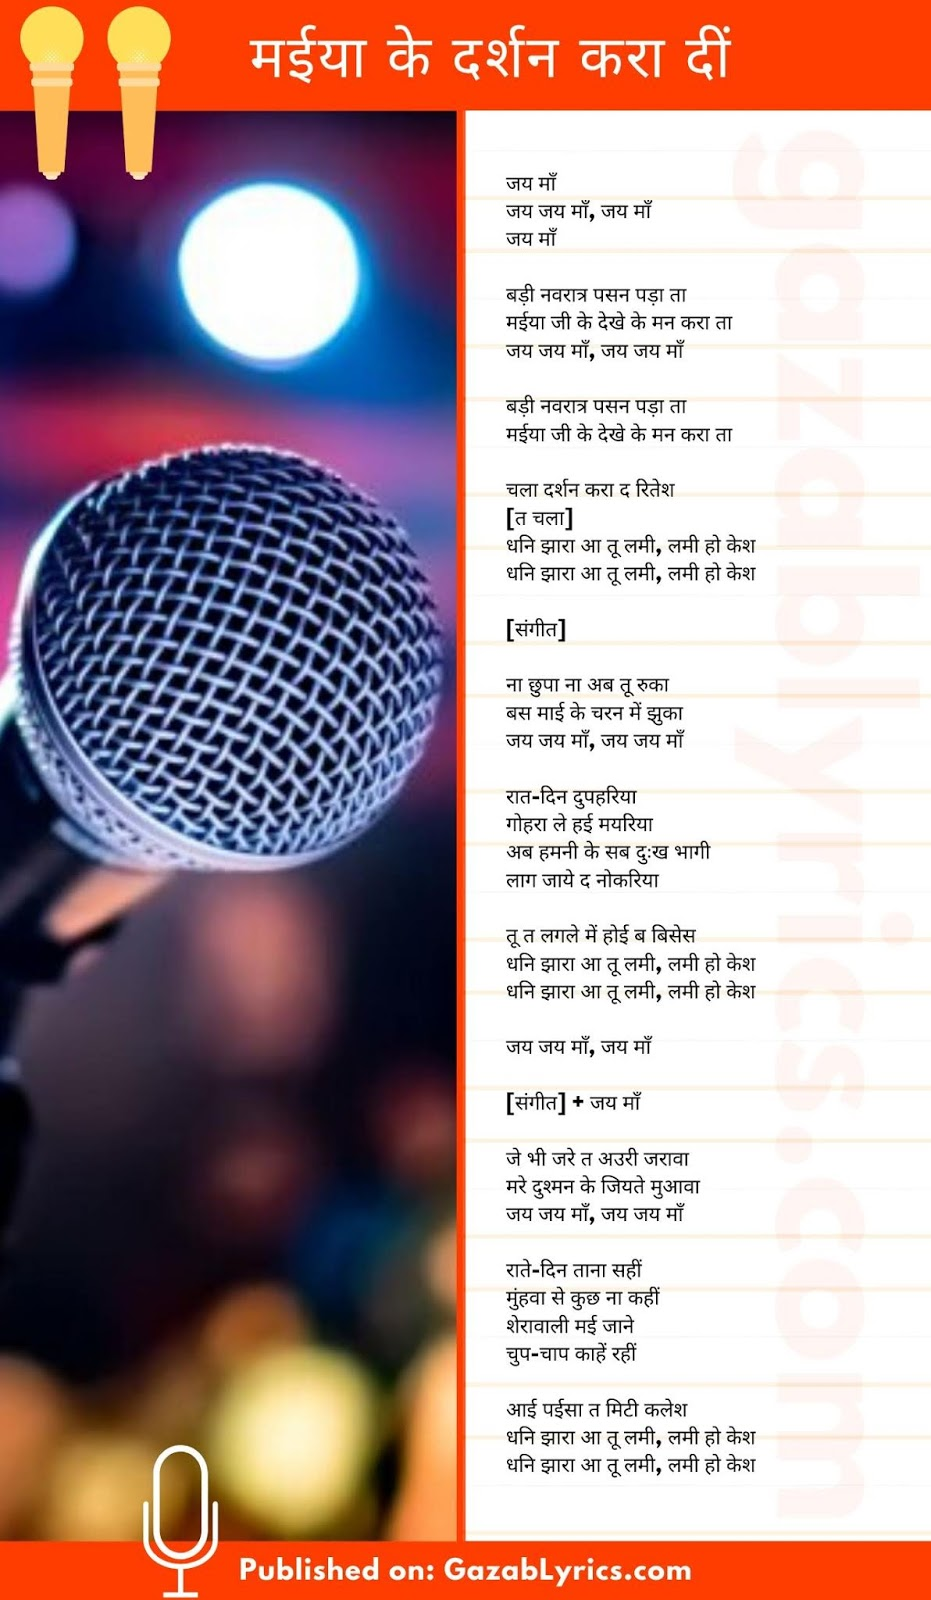 Maiya Ke Darshan Karadi song lyrics image